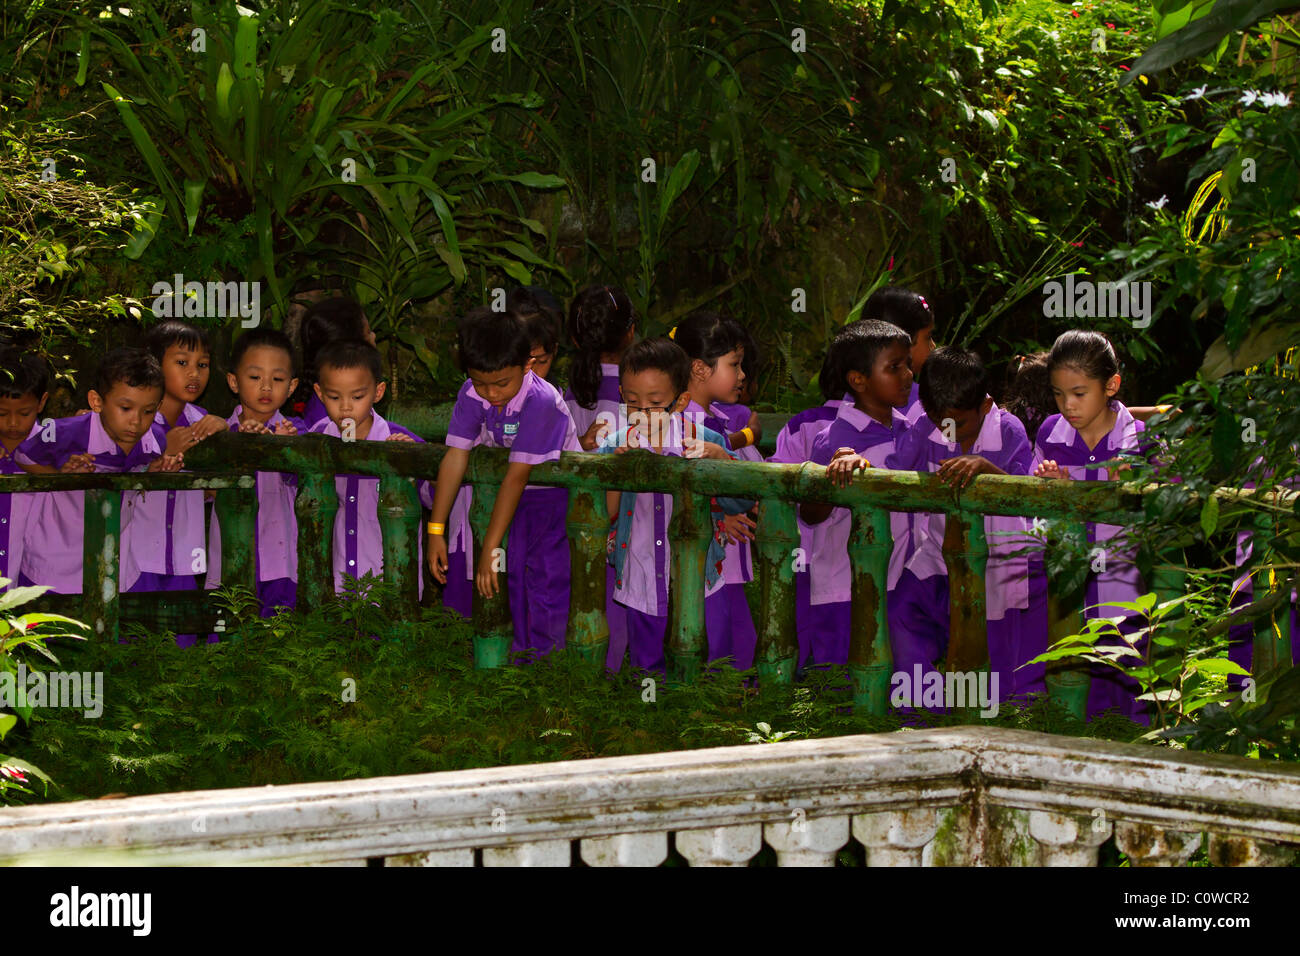 Malaysian schoolchildren in uniforms on an outing in Kuala Lumpur. The children show a wide range of ethnic and - Stock Image